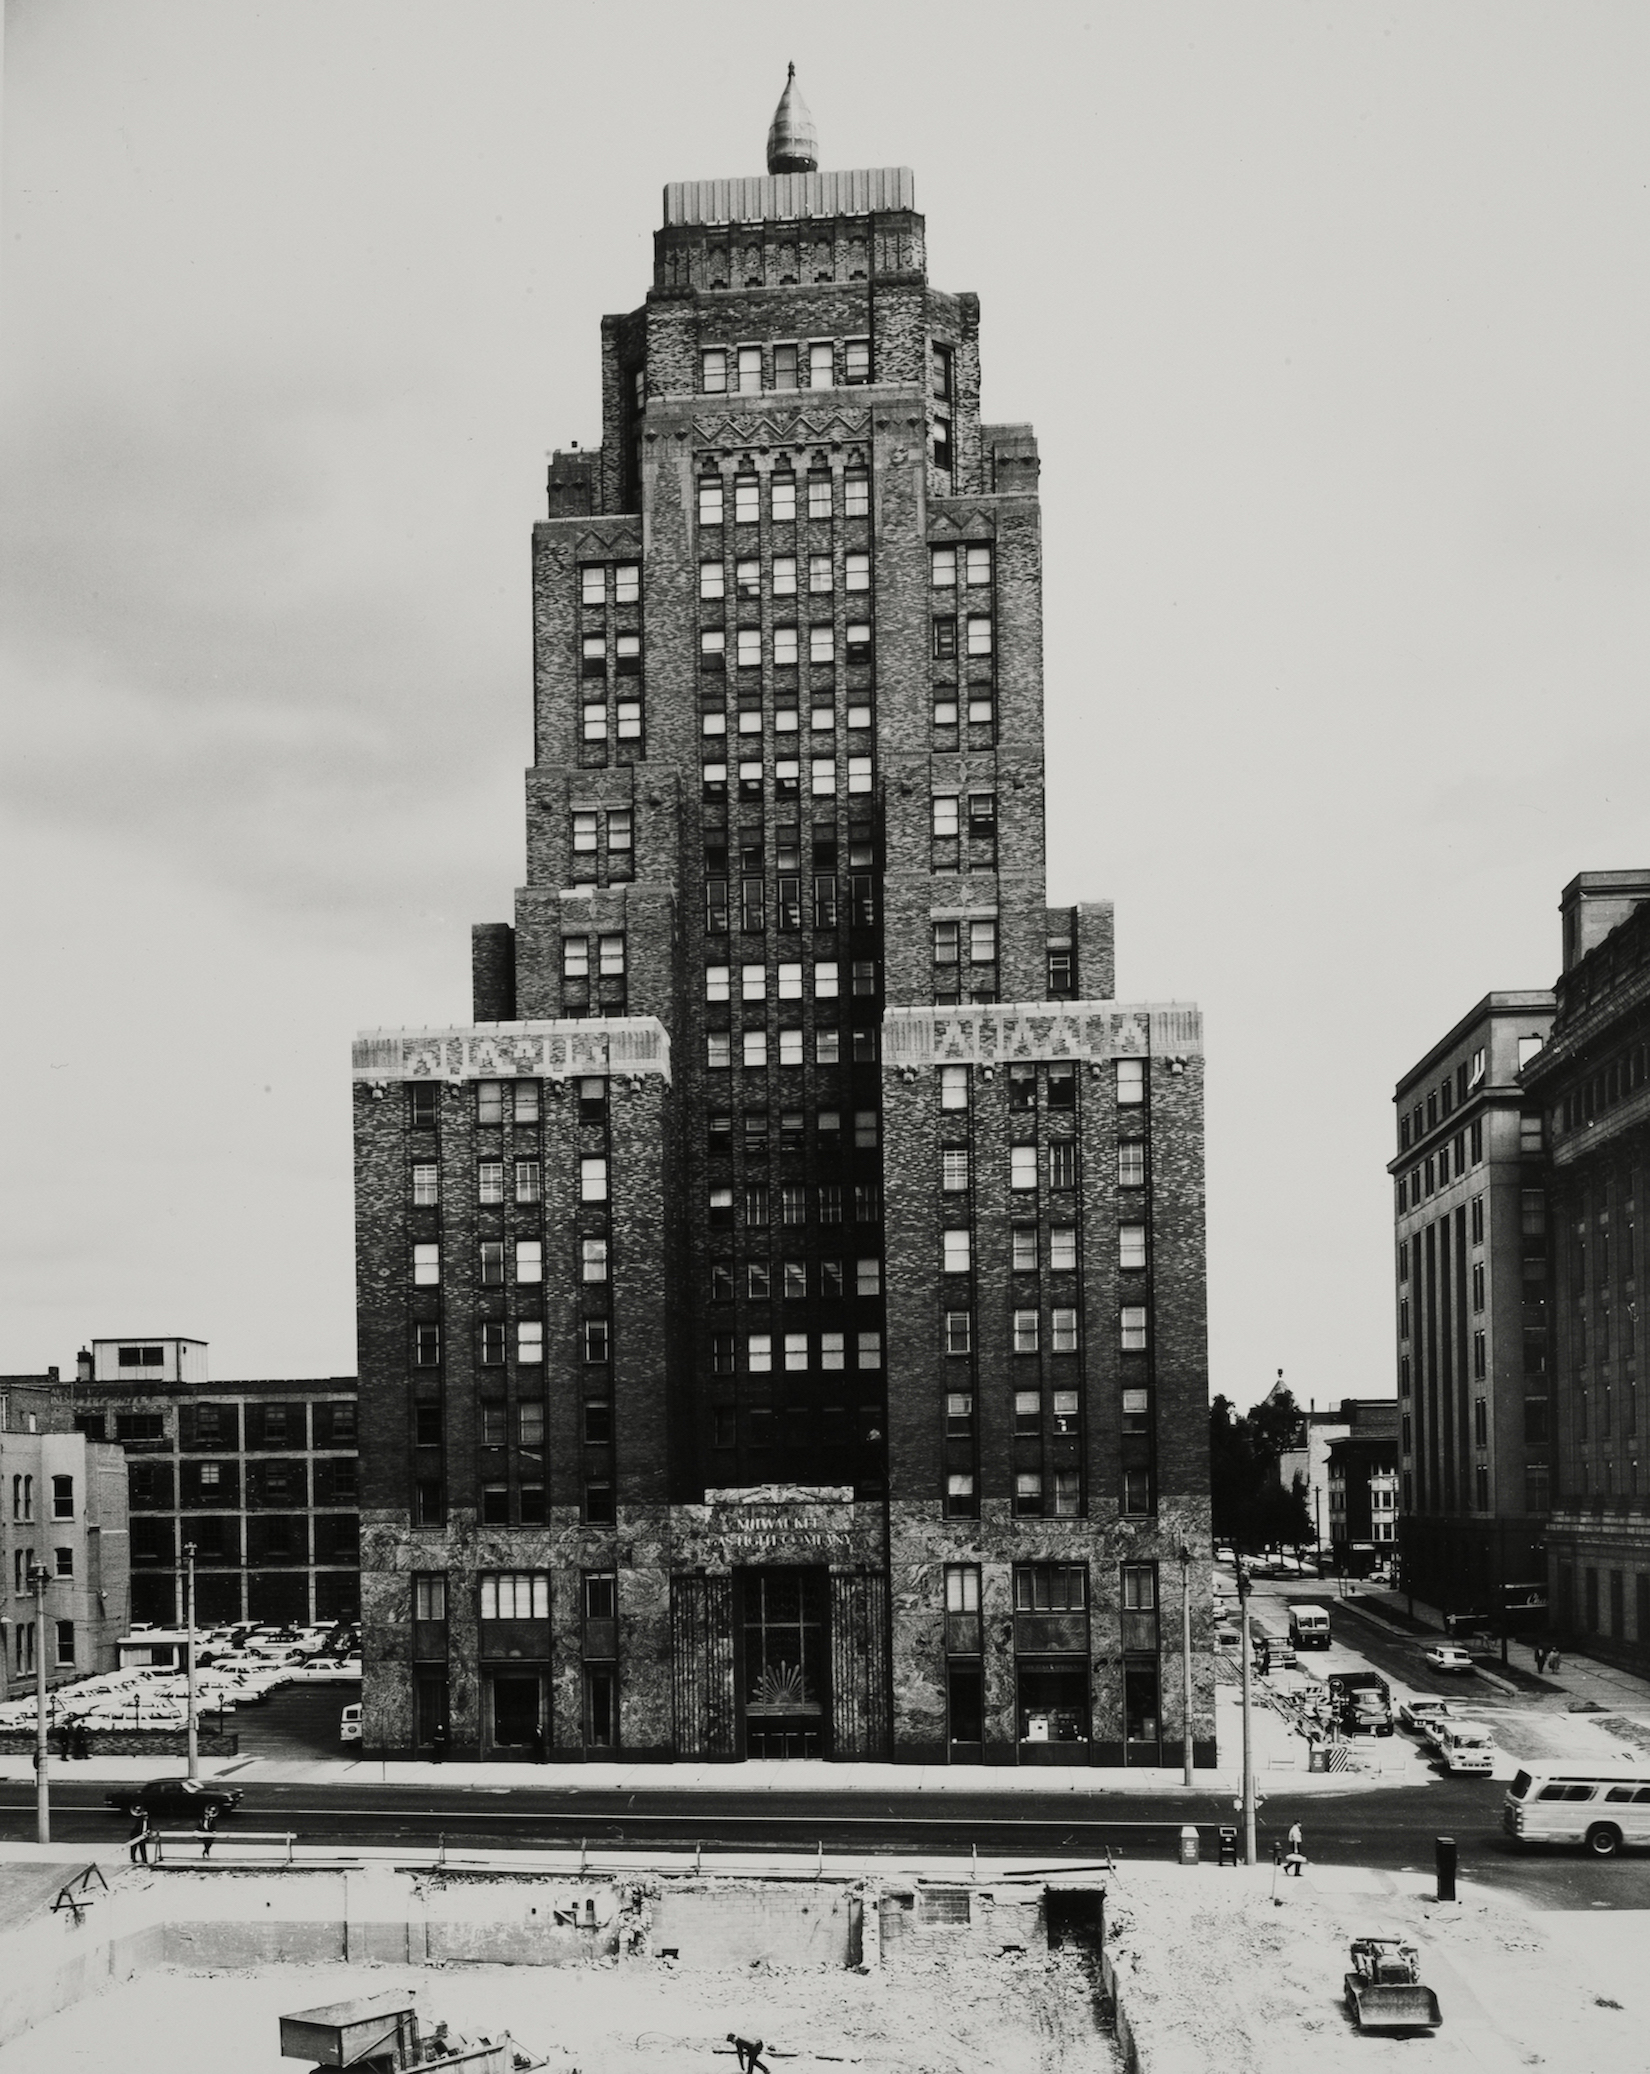 <table class=&quot;lightbox&quot;><tr><td colspan=2 class=&quot;lightbox-title&quot;>Wisconsin Gas Company Building</td></tr><tr><td colspan=2 class=&quot;lightbox-caption&quot;>This 1965 photograph of the Wisconsin Gas Building shows the flame atop the structure.</td></tr><tr><td colspan=2 class=&quot;lightbox-spacer&quot;></td></tr><tr class=&quot;lightbox-detail&quot;><td class=&quot;cell-title&quot;>Source: </td><td class=&quot;cell-value&quot;>Photograph by Alan Magayne-Roshak. Copyright 2013. Reprinted with permission.</td></tr><tr class=&quot;filler-row&quot;><td colspan=2>&nbsp;</td></tr></table>